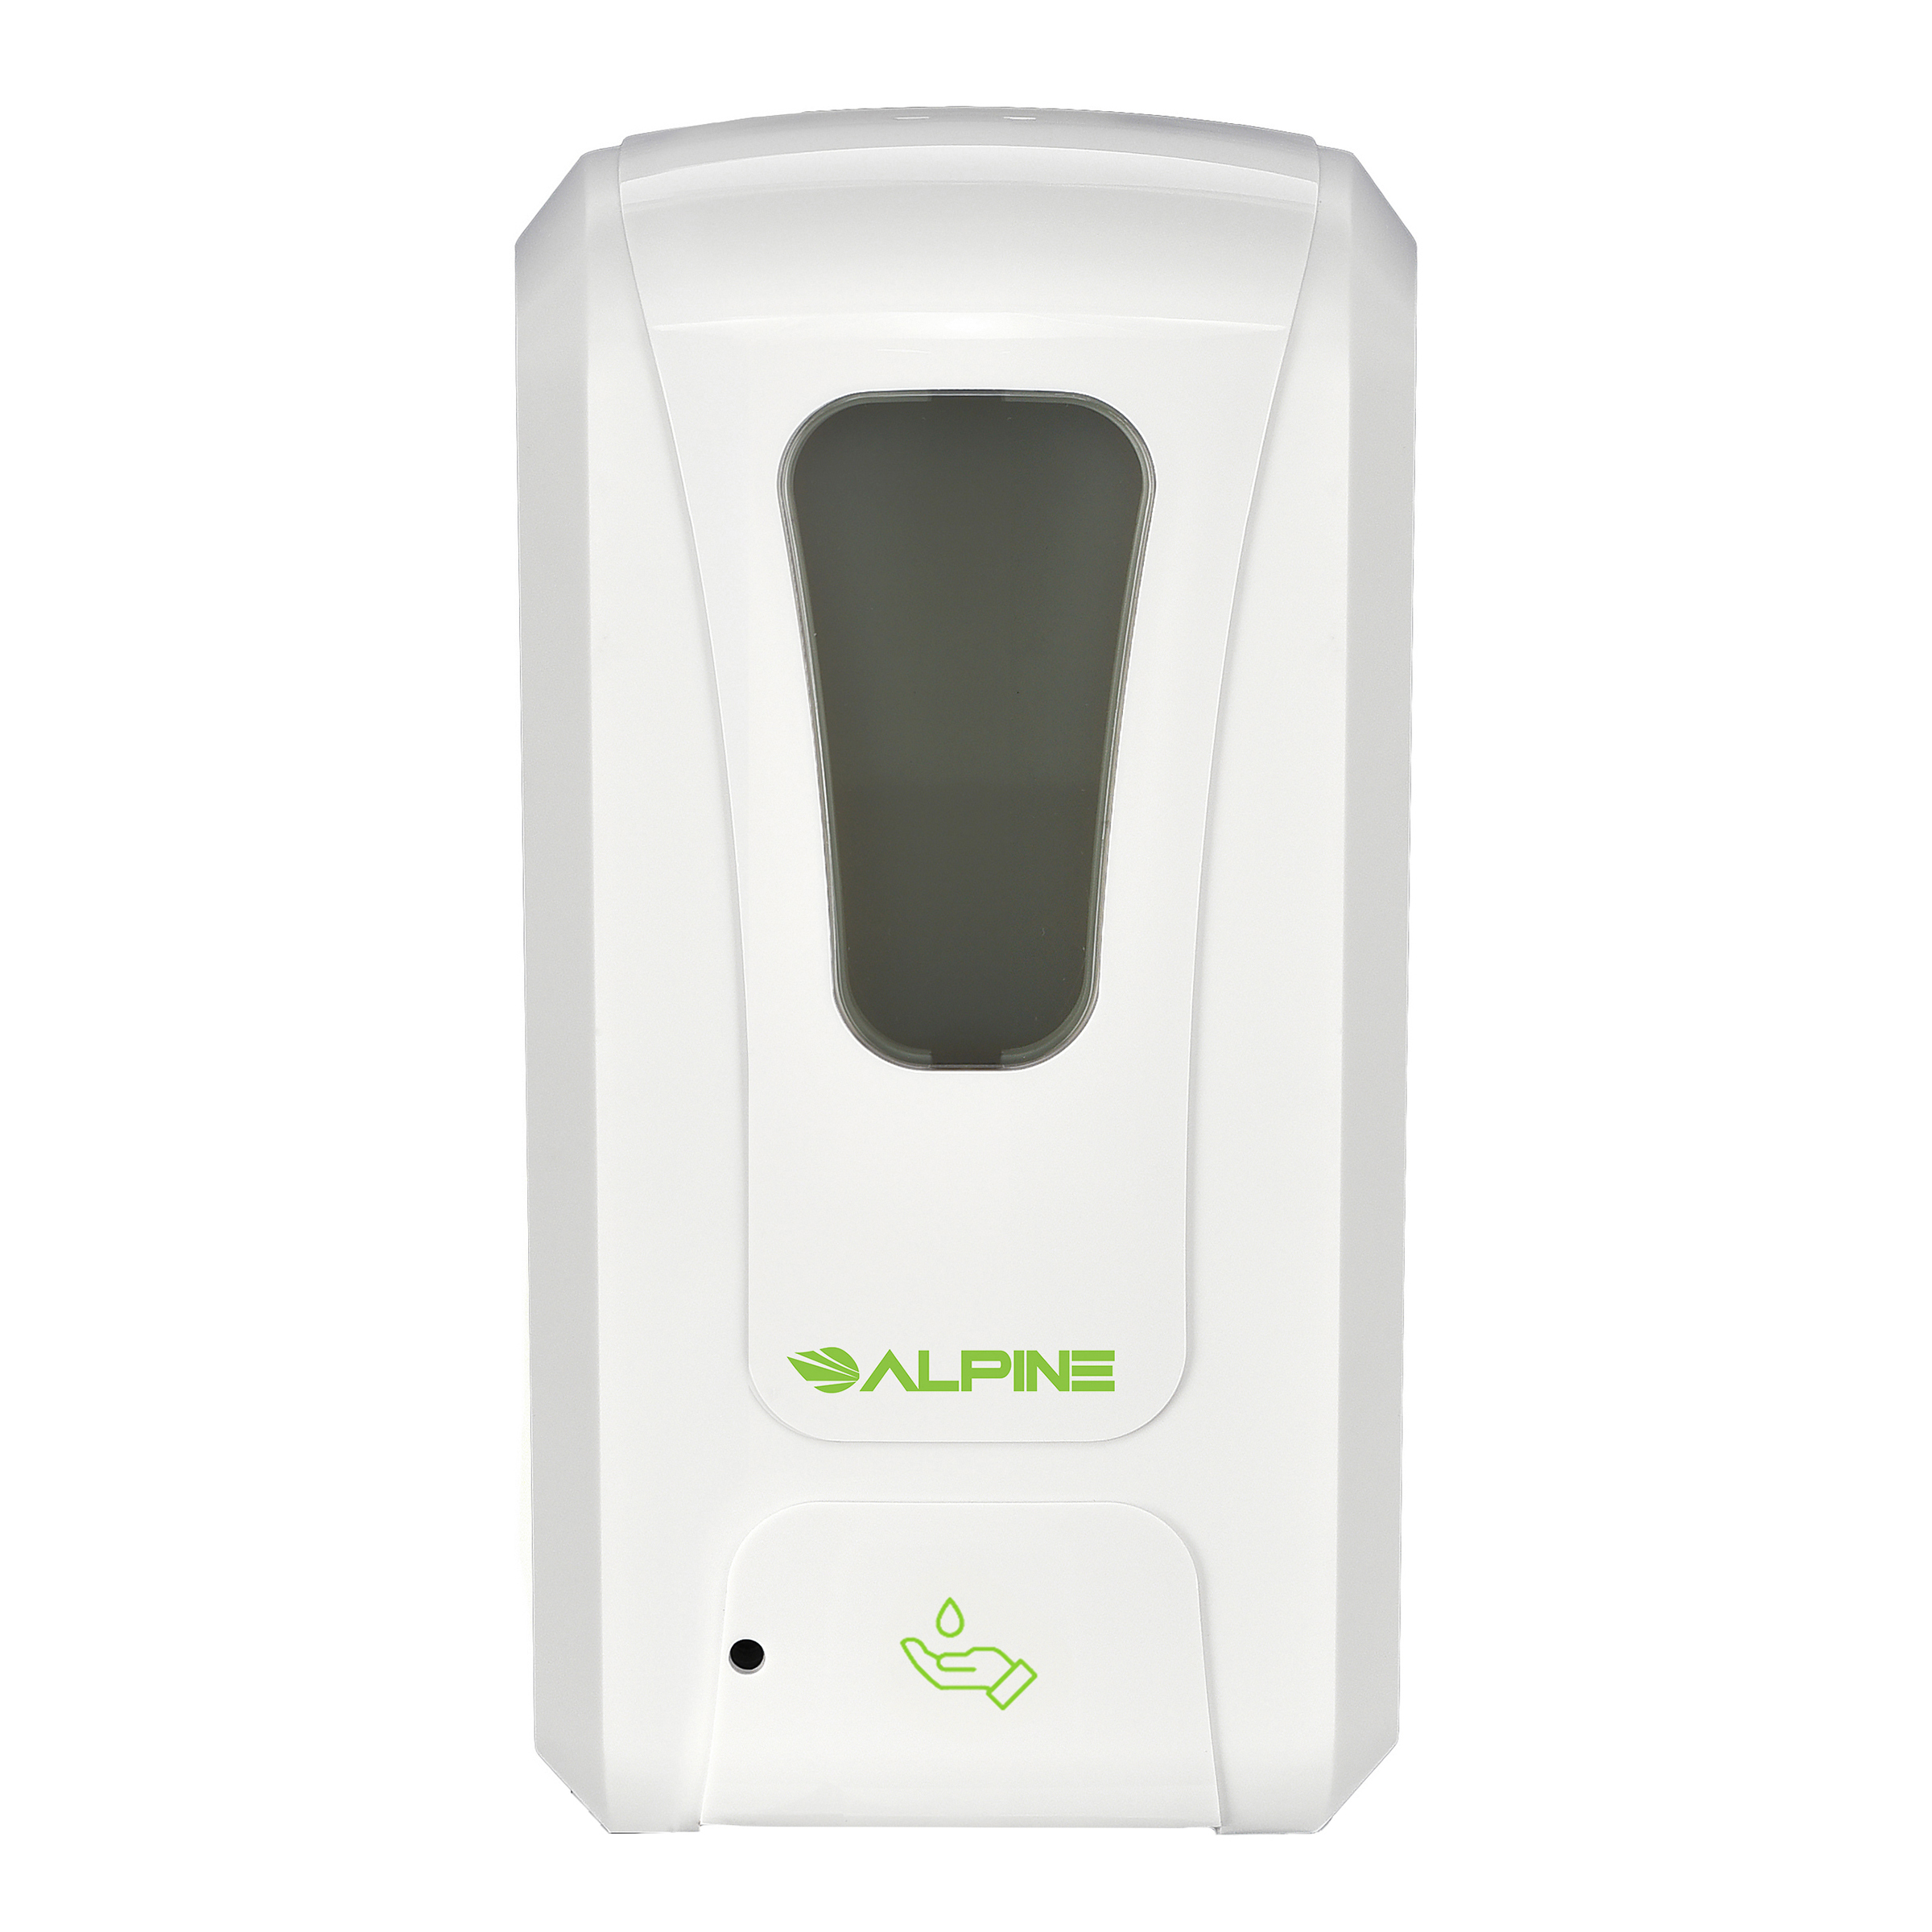 AUTOMATIC HANDS-FREE LIQUID/GEL HAND SANITIZER/SOAP DISPENSER, 1200 ML, WHITE